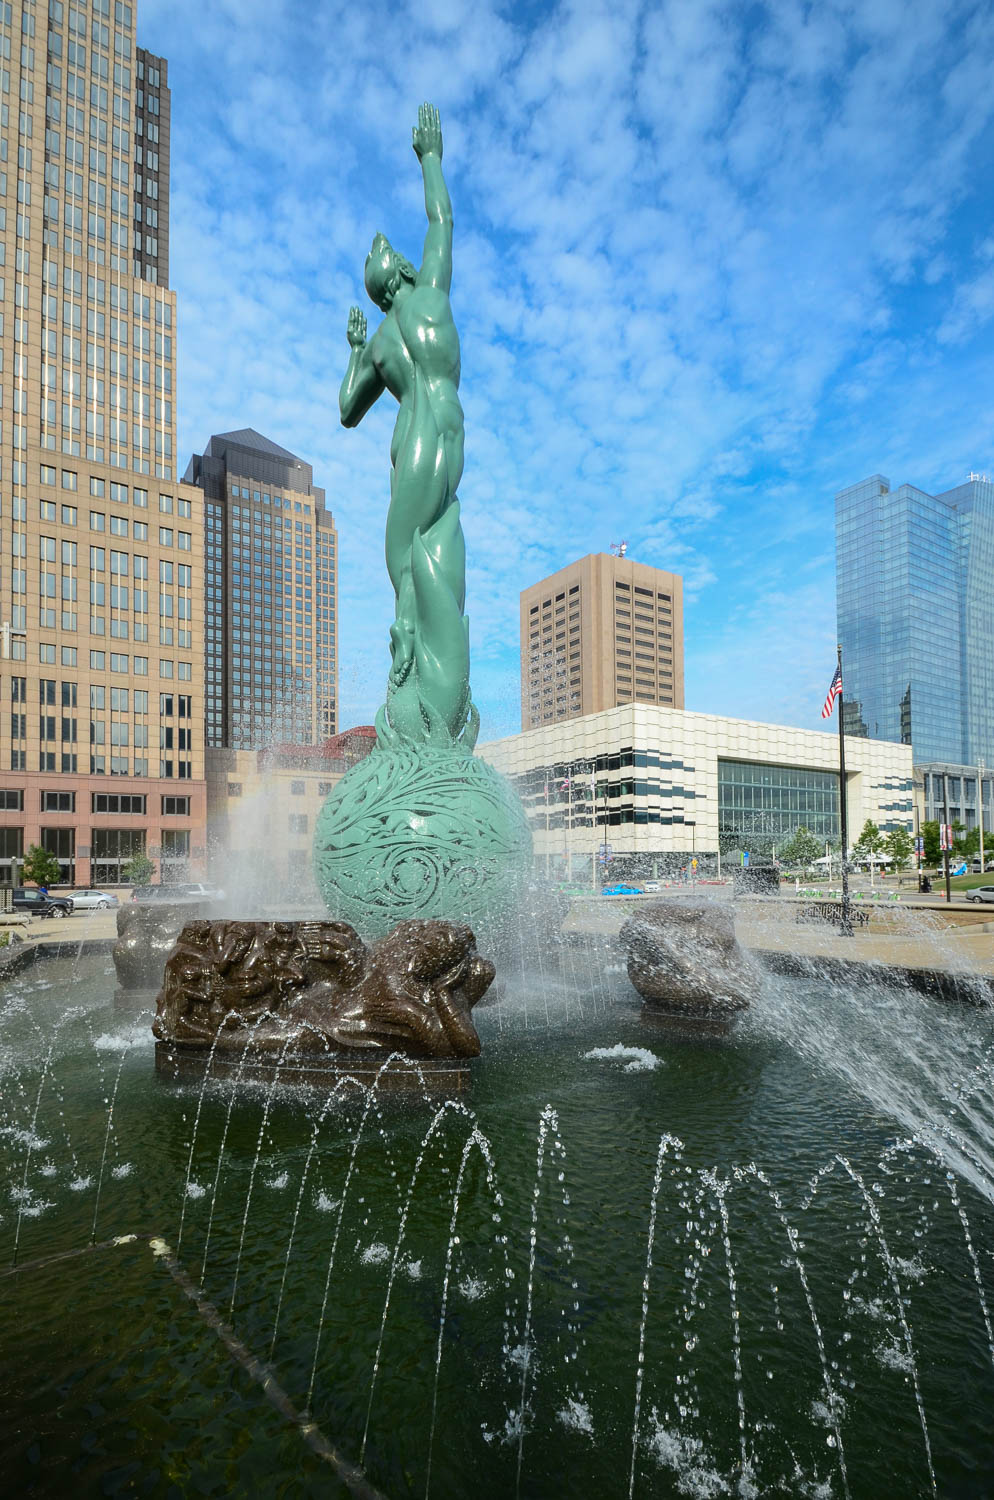 Cleveland isn't so bad! Just take a look at the Fountain of Eternal Life! / Image: Sherry Lachelle Photography